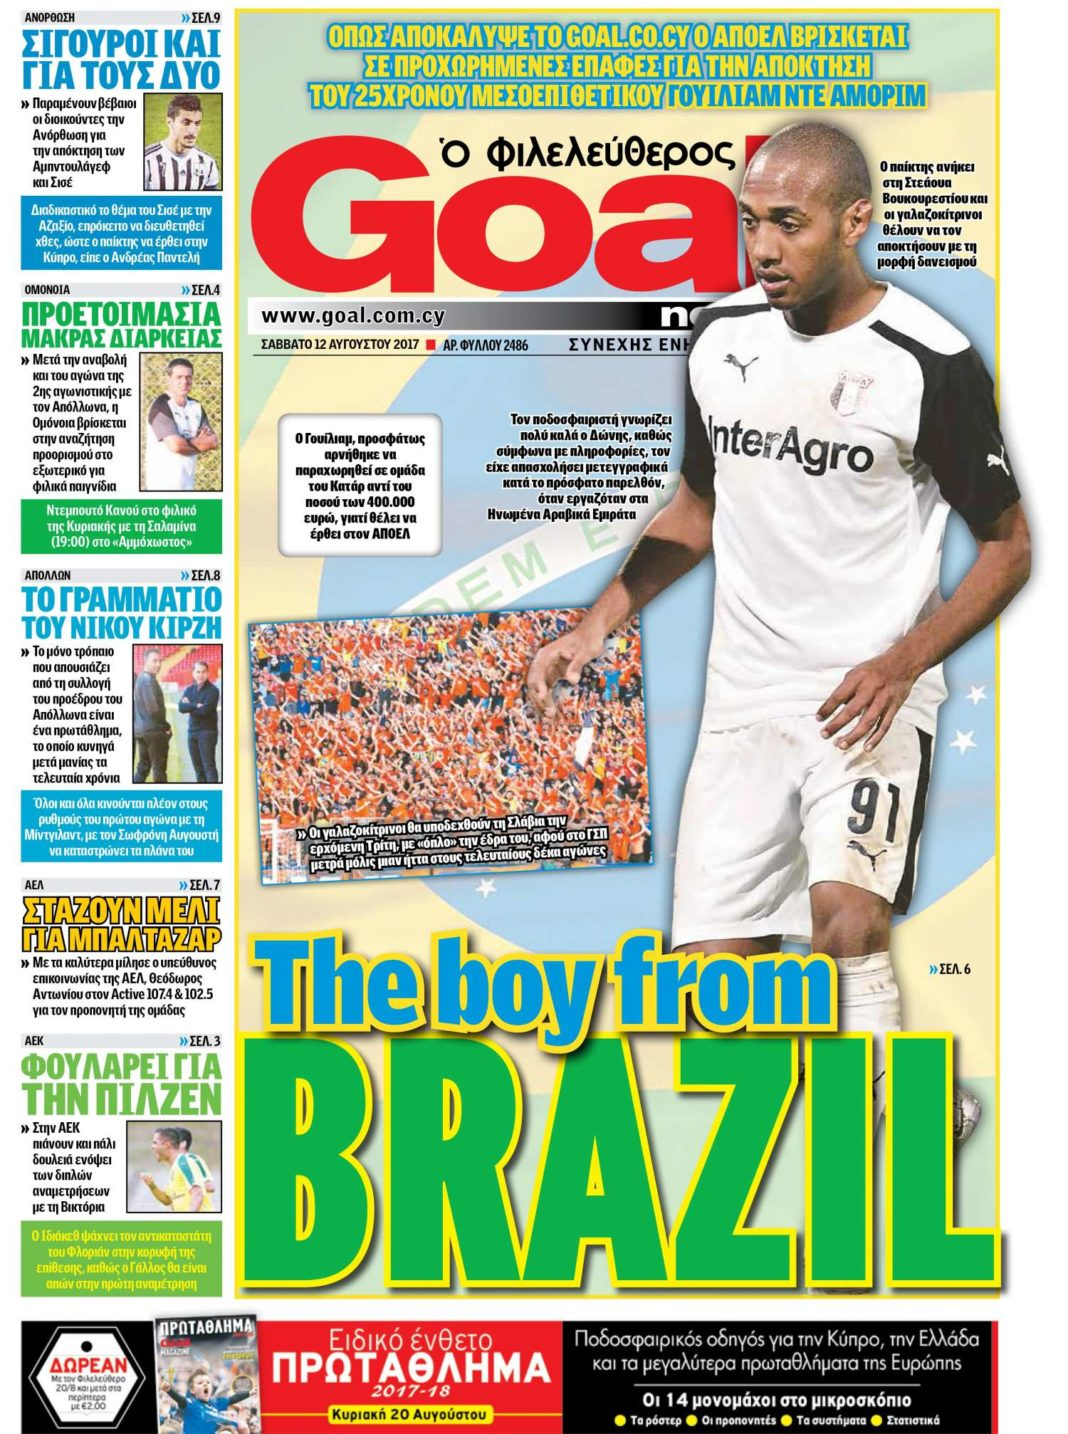 The boy from BRAZIL!